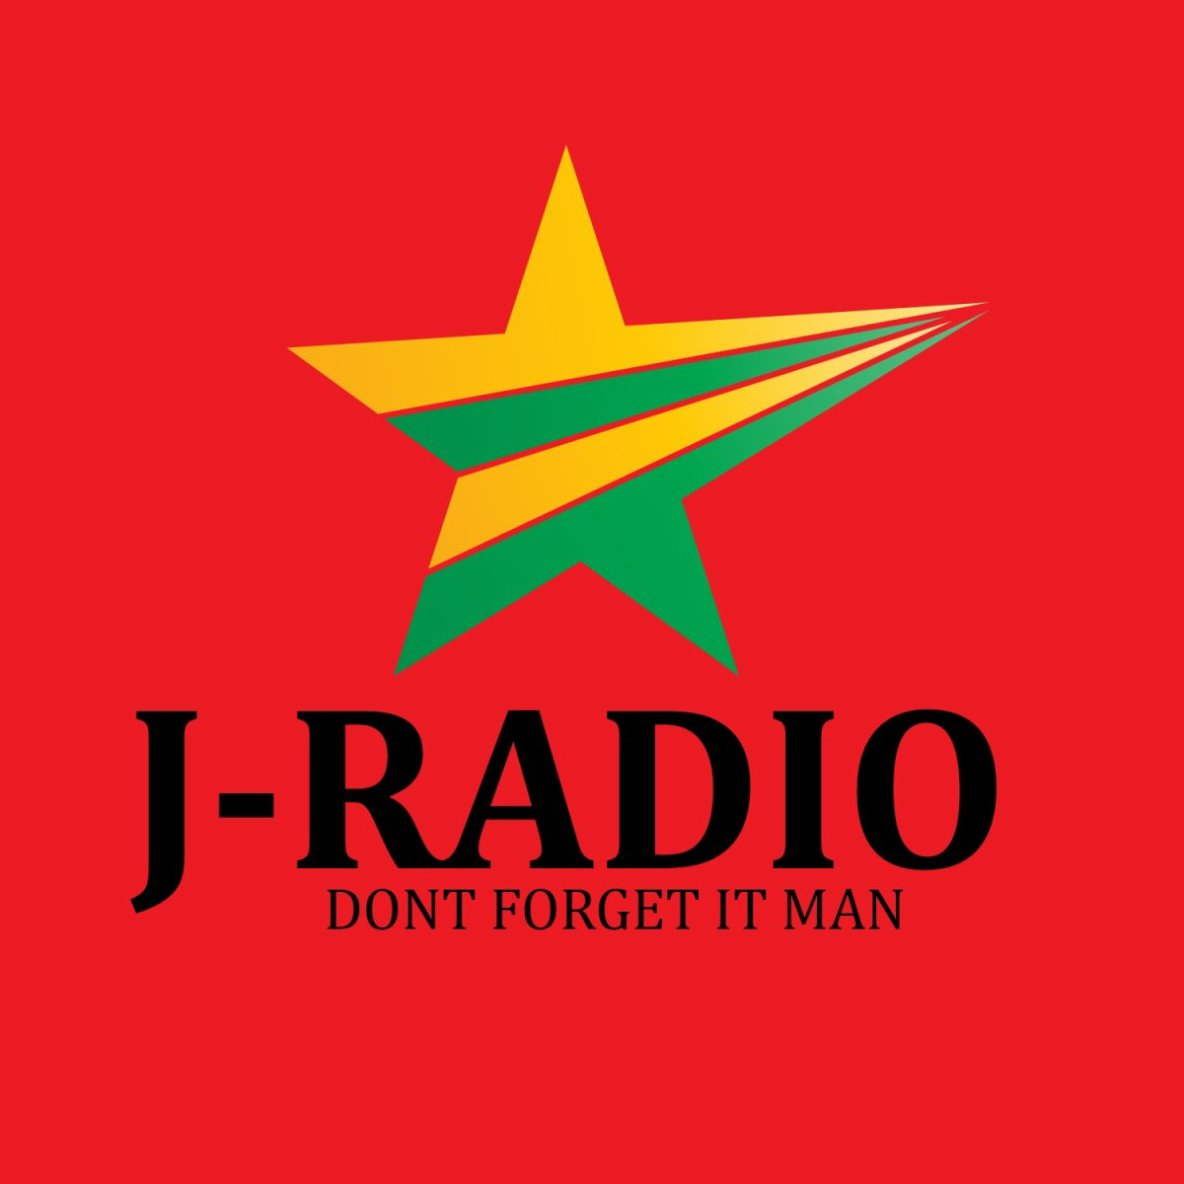 J-RADIO | LPMR.207 DIGITAL BROADCASTING